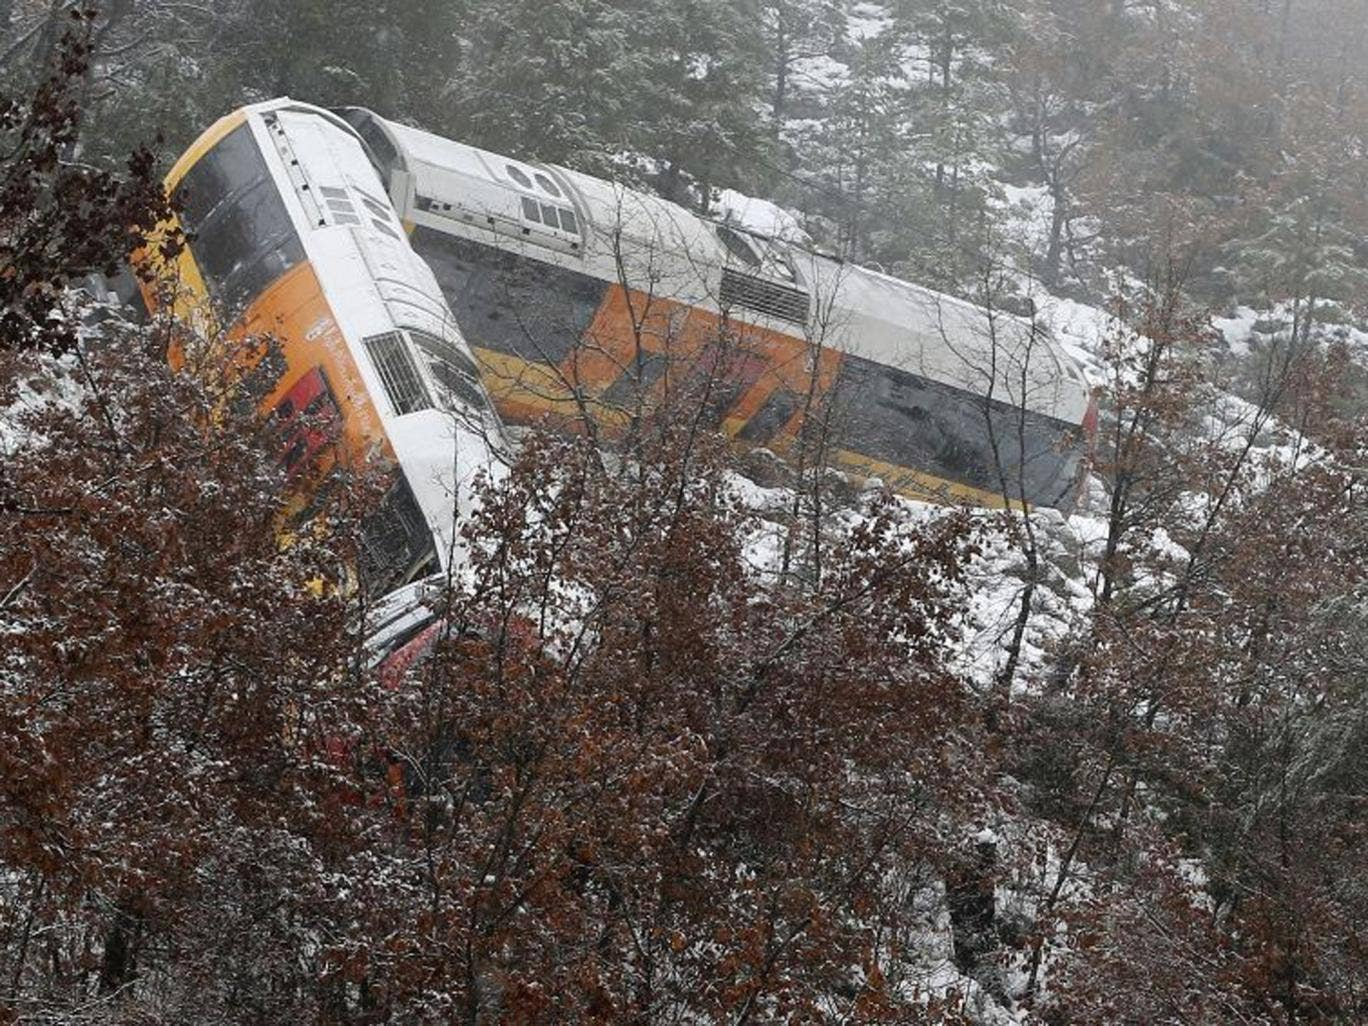 The train hangs from a ledge after it had been derailed by a boulder